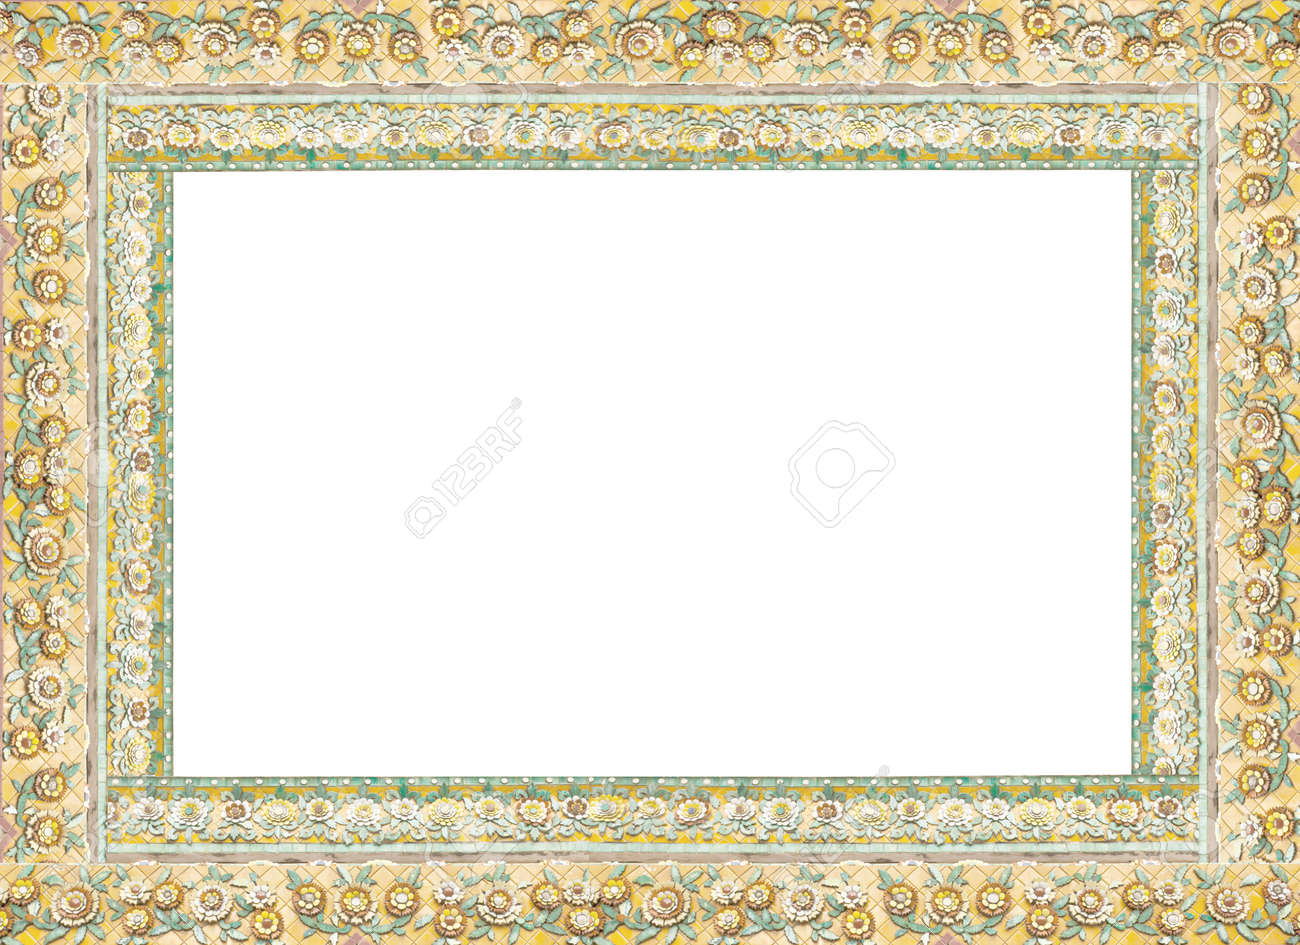 Thai frame china porcelain decorated in thai blank frame stock thai frame china porcelain decorated in thai blank frame stock photo 21932944 jeuxipadfo Image collections